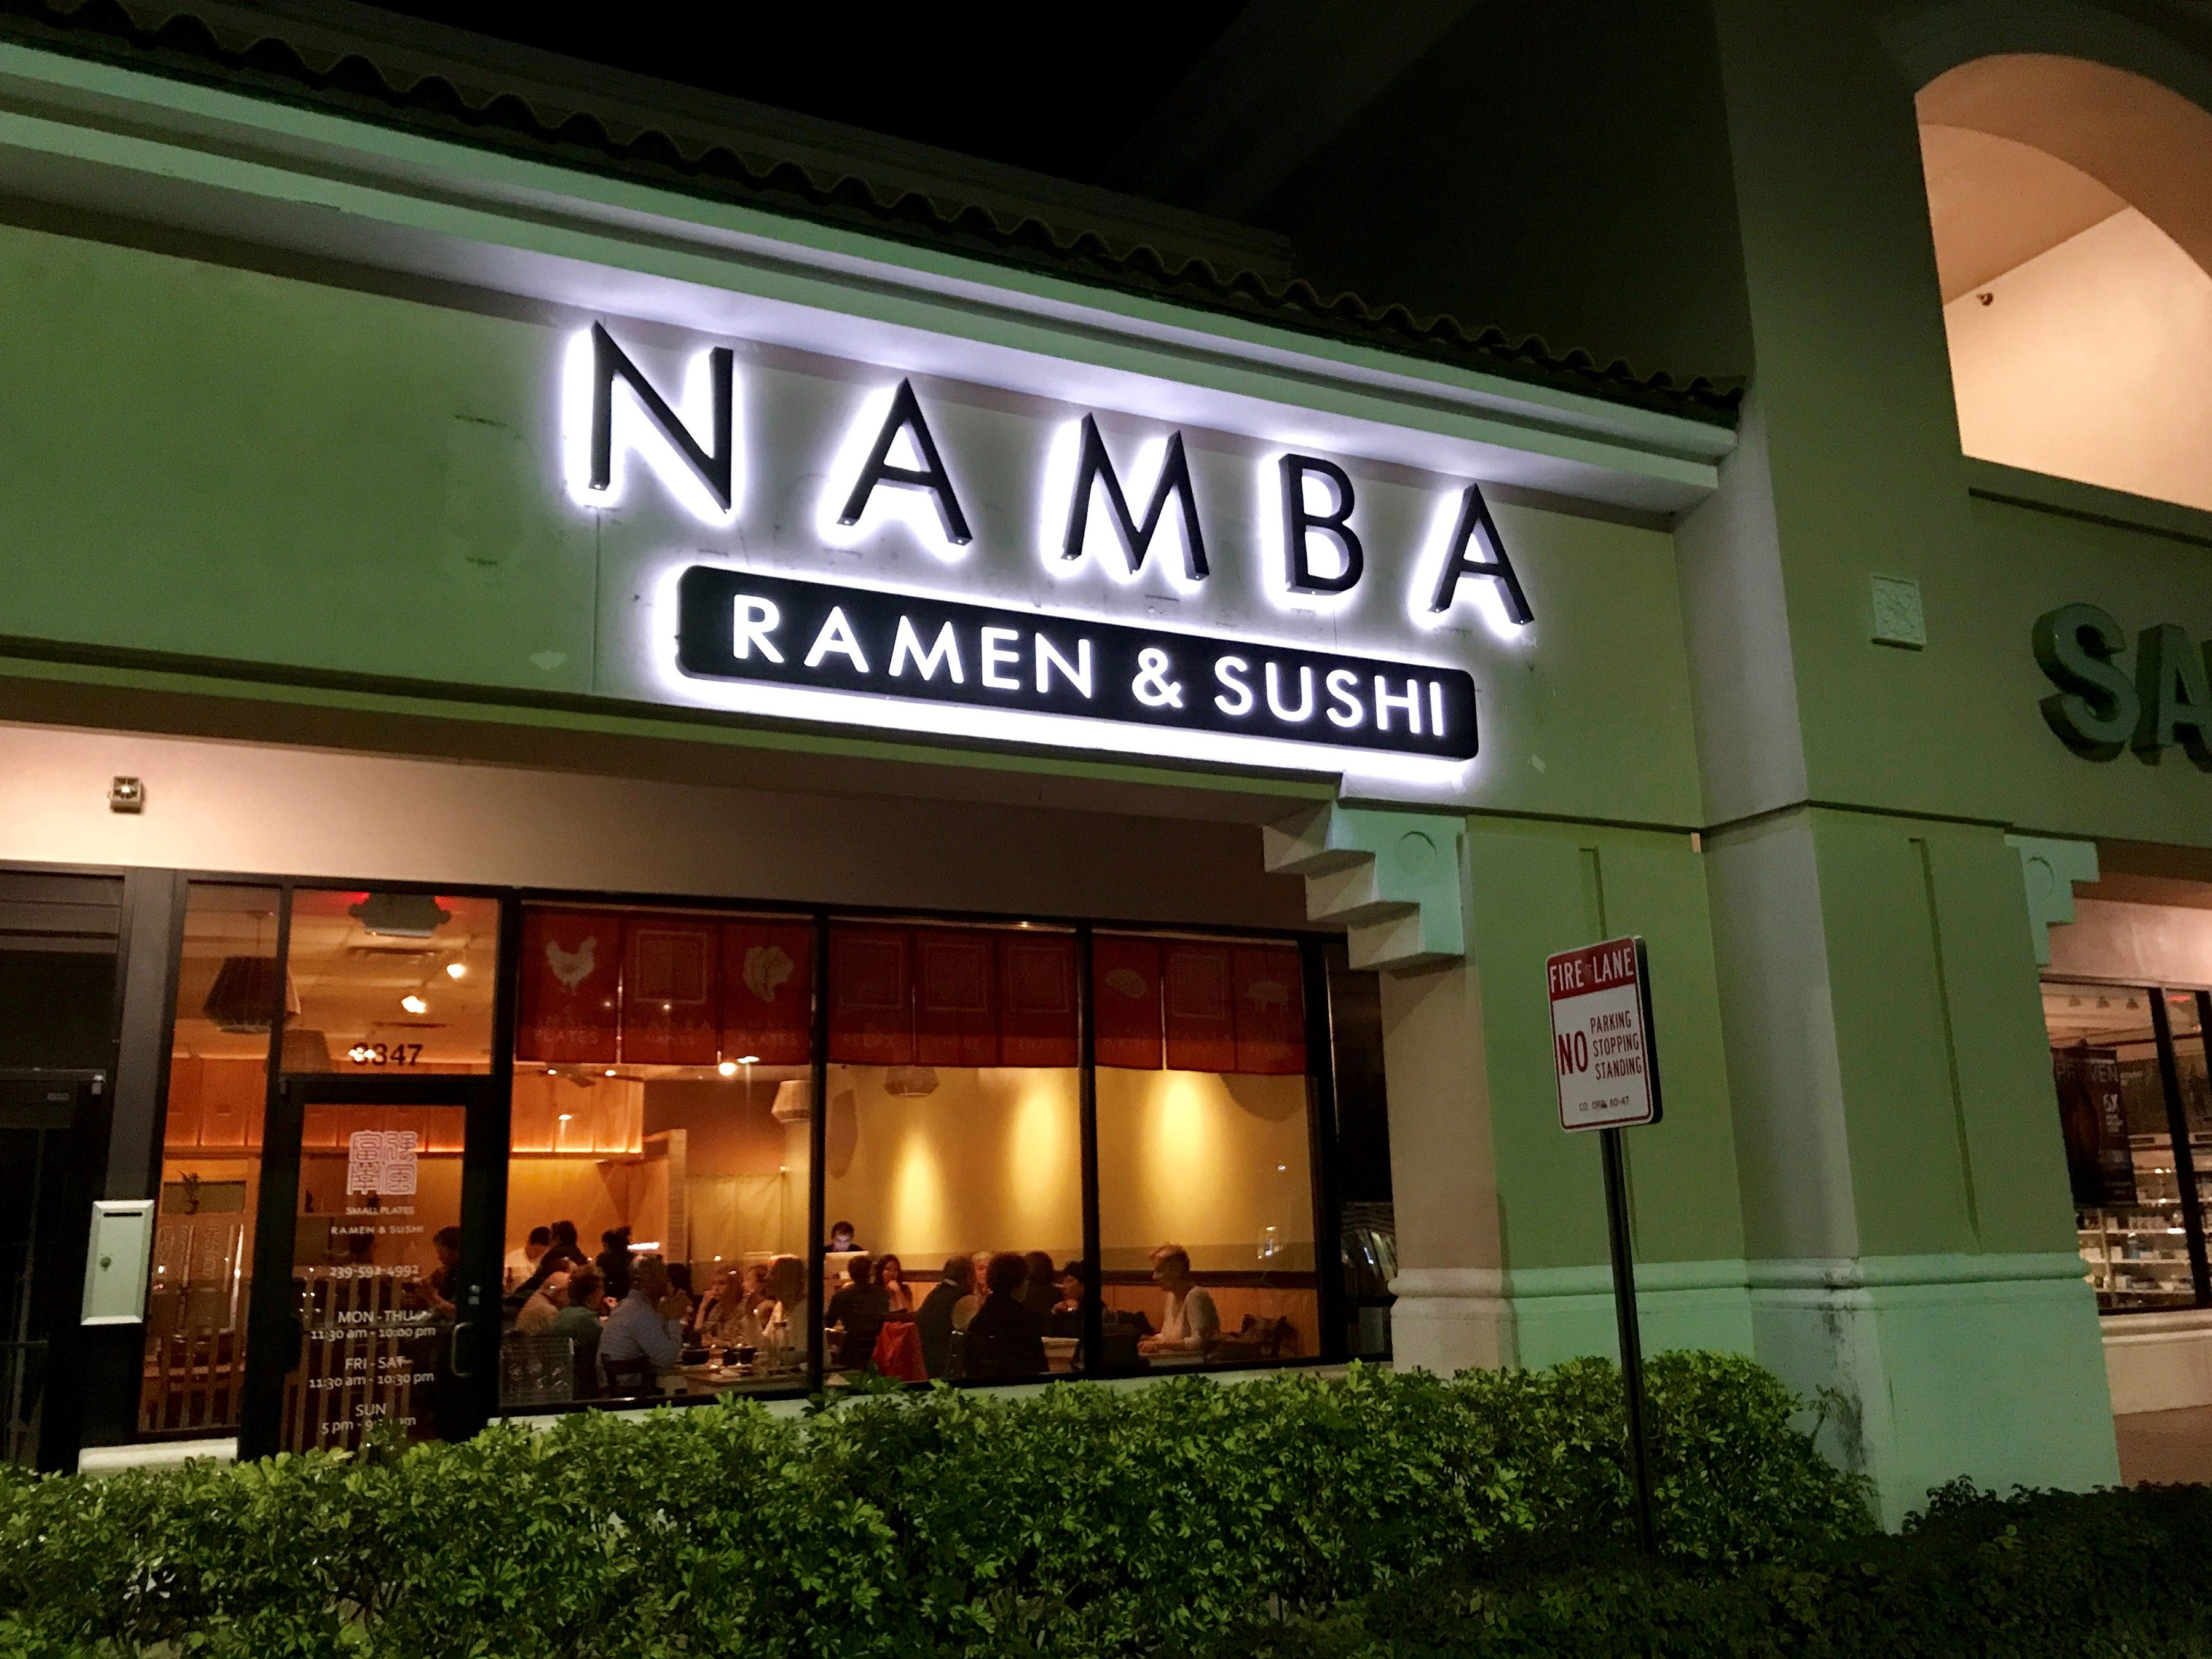 Namba Ramen & Sushi restaurant opened in January 2018 in the Marketplace at Pelican Bay on the southwest corner of U.S. 41 and Vanderbilt Beach Road in North Naples.